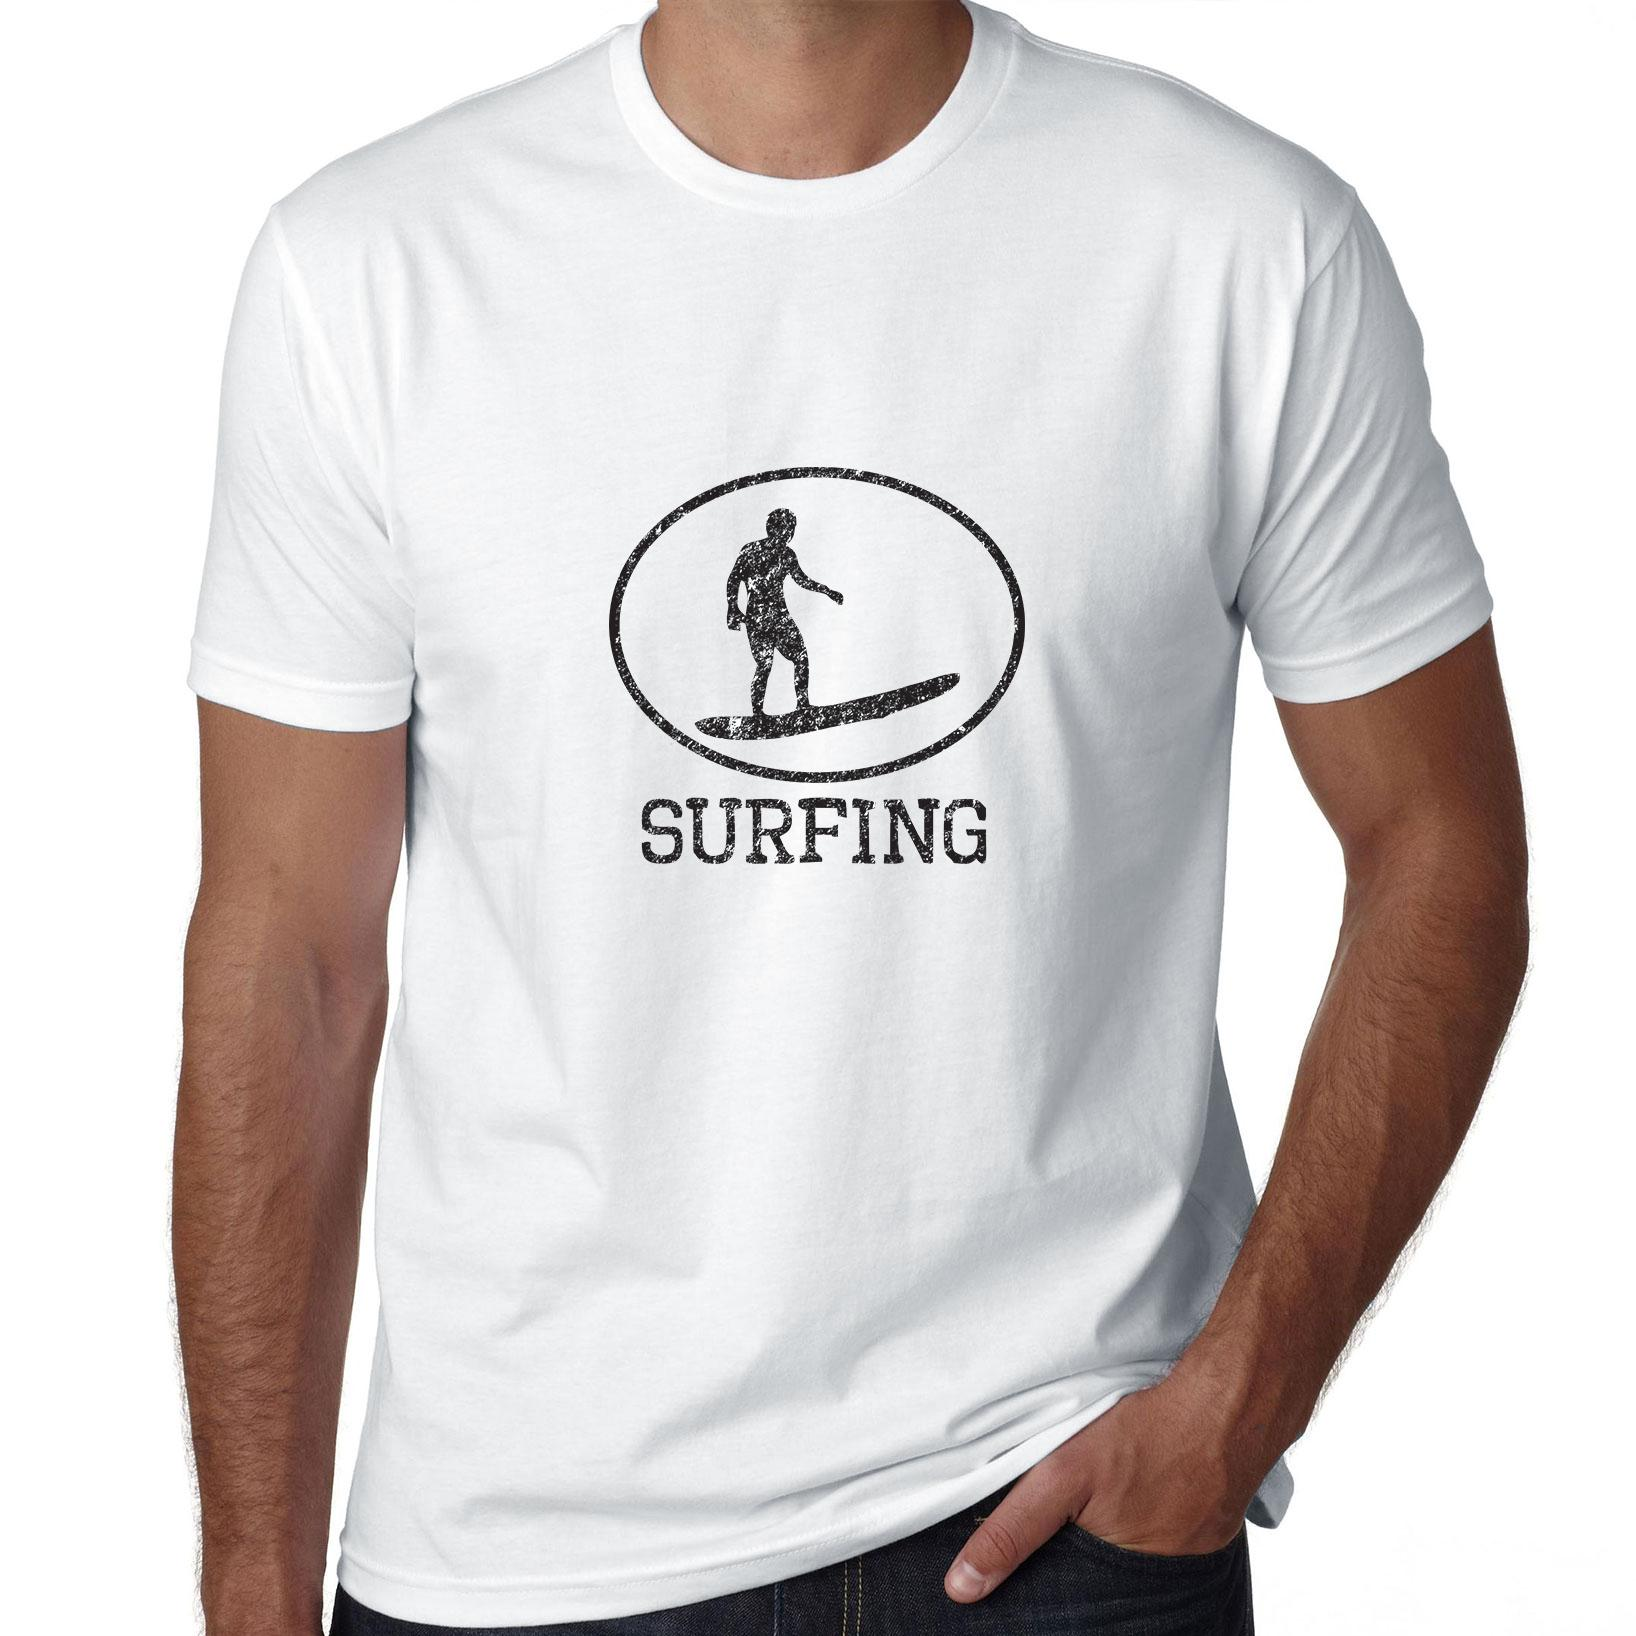 Surfing Surfer Riding Surfboard Iconic Silhouette Men's T-Shirt